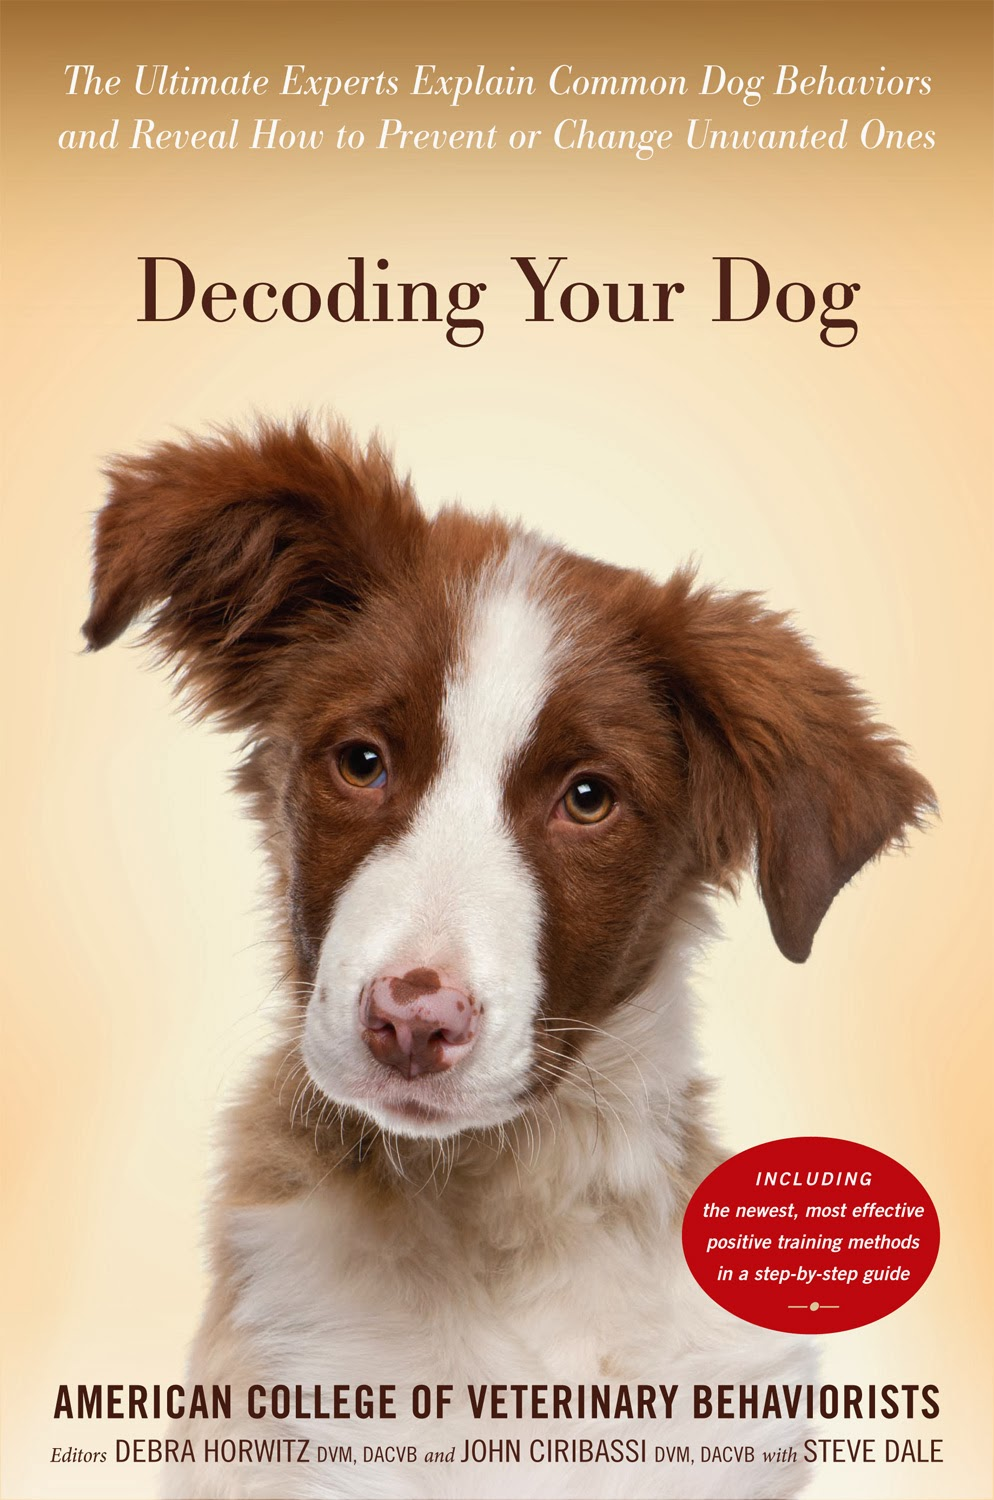 Decoding Your Dog - dog behavior book written by veterinary experts